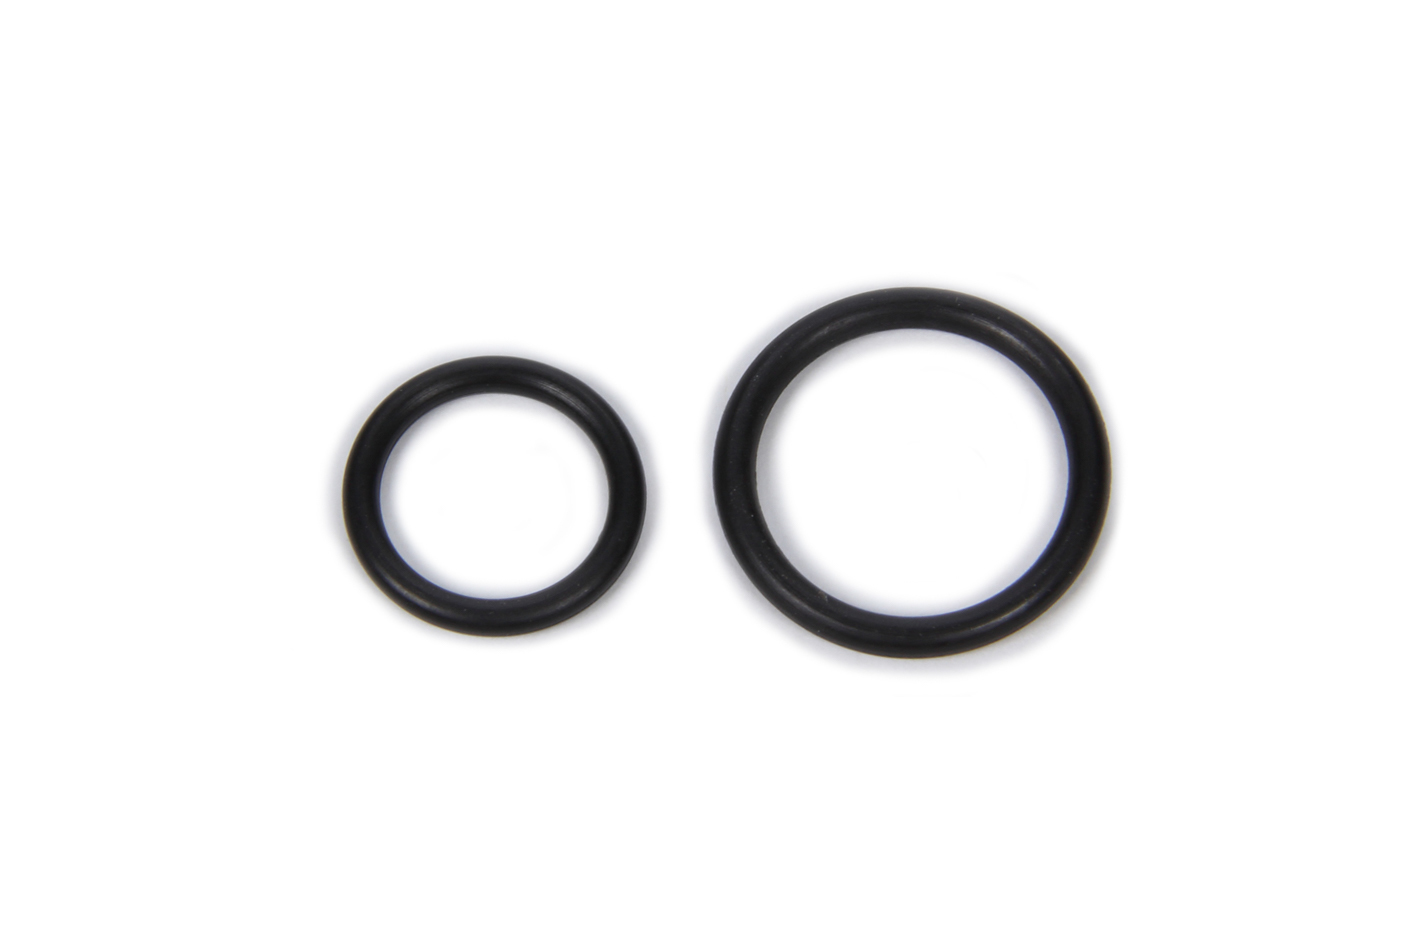 Peterson Fluid 09-0700 Filter Rebuild Kit, O-Rings, Viton, Peterson 700 Series Filters, Kit